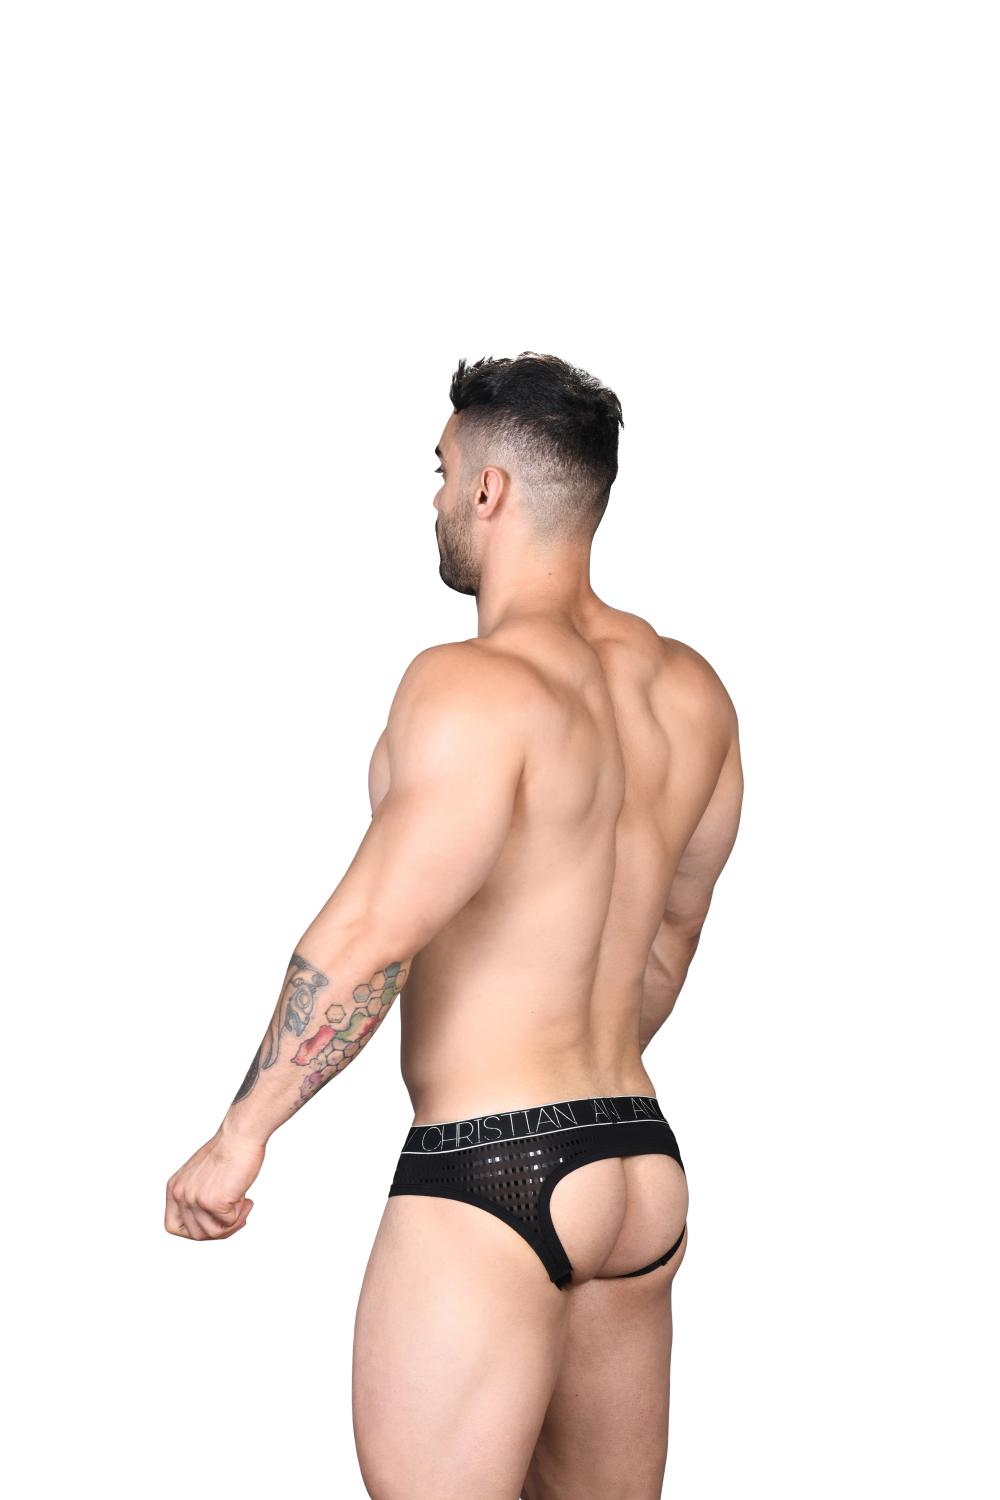 Dazzle Locker Room Jockstrap ANDREW CHRISTIAN Almost Naked Black5